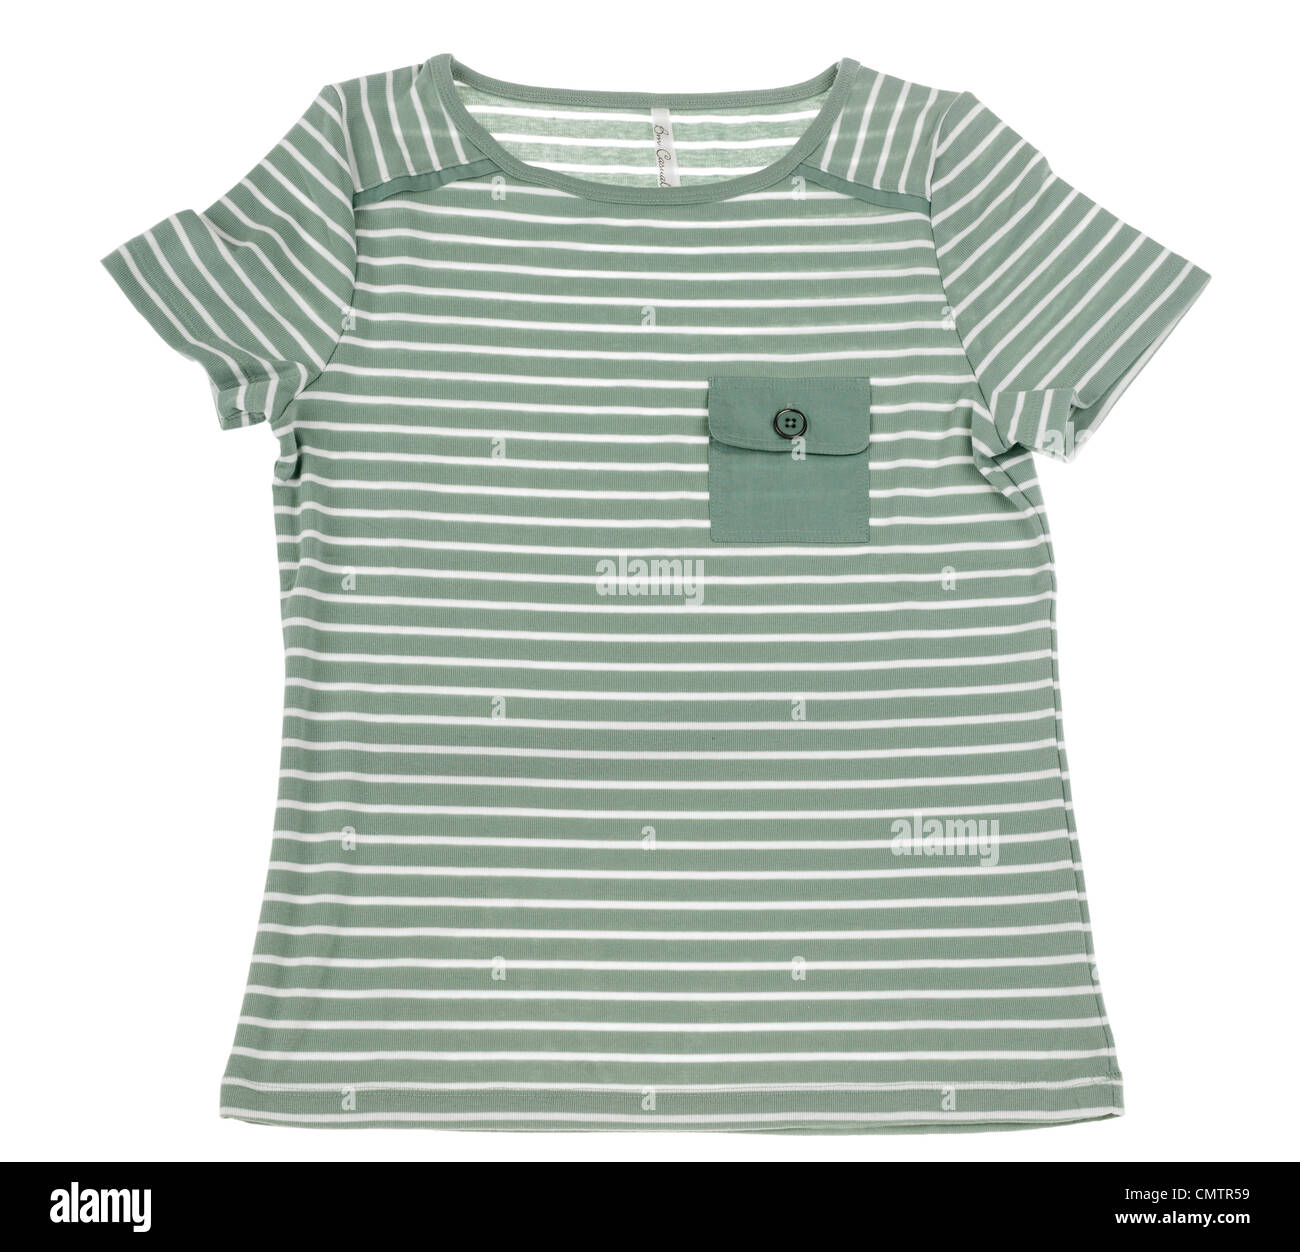 ladies green and white striped short sleeved cotton tee shirt - Stock Image